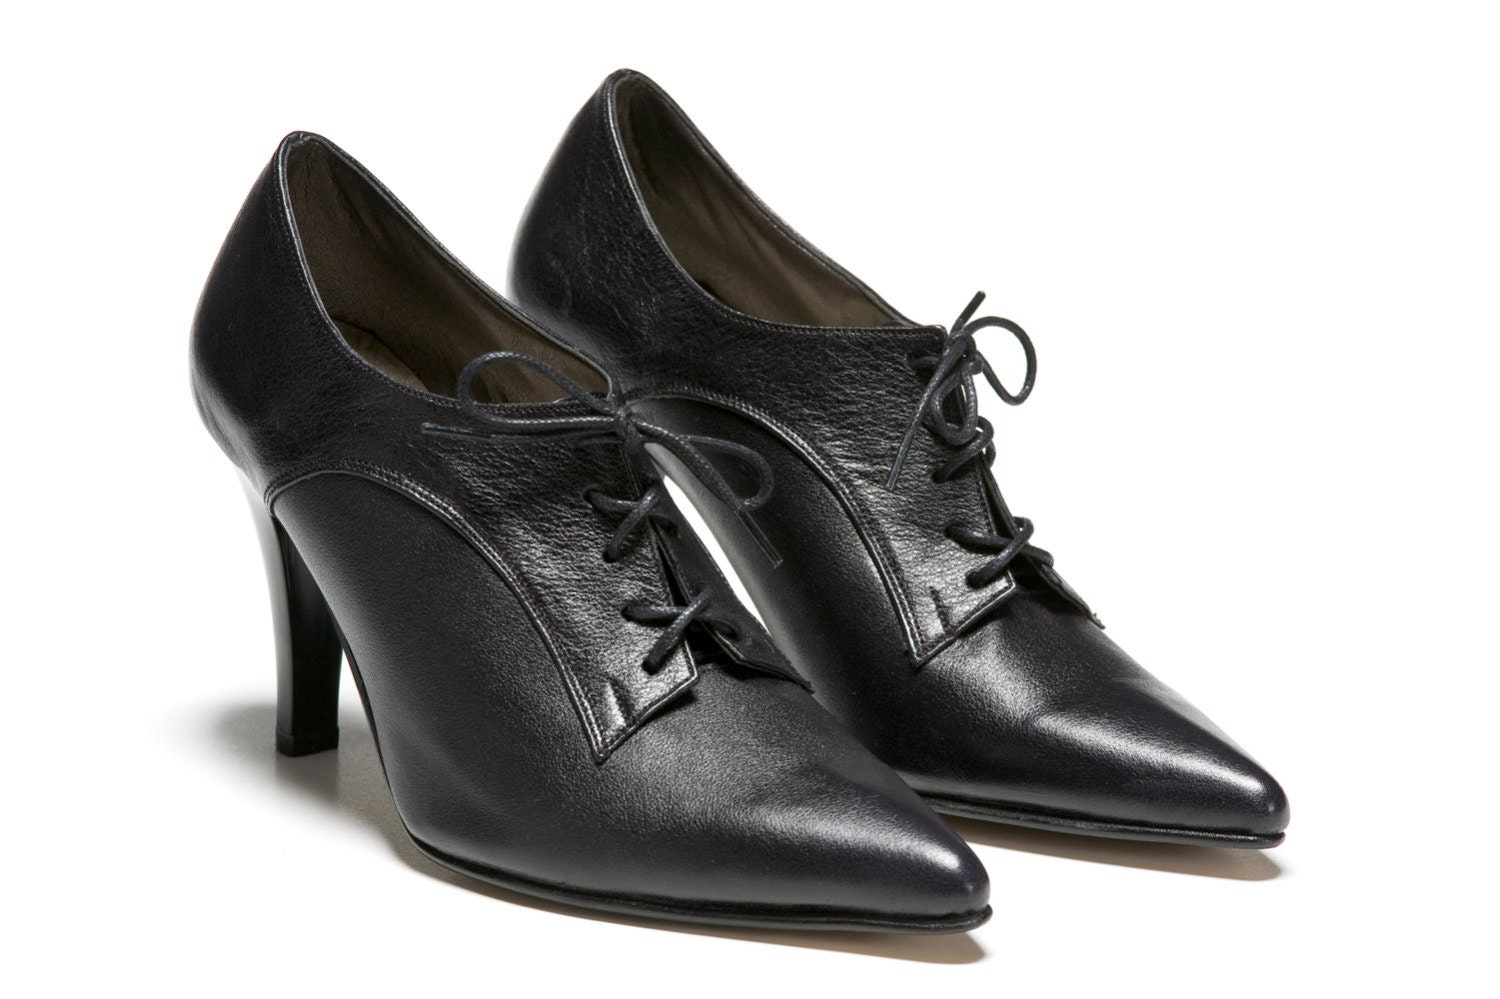 heisenberg womens leather shoes black high heel lace up tie